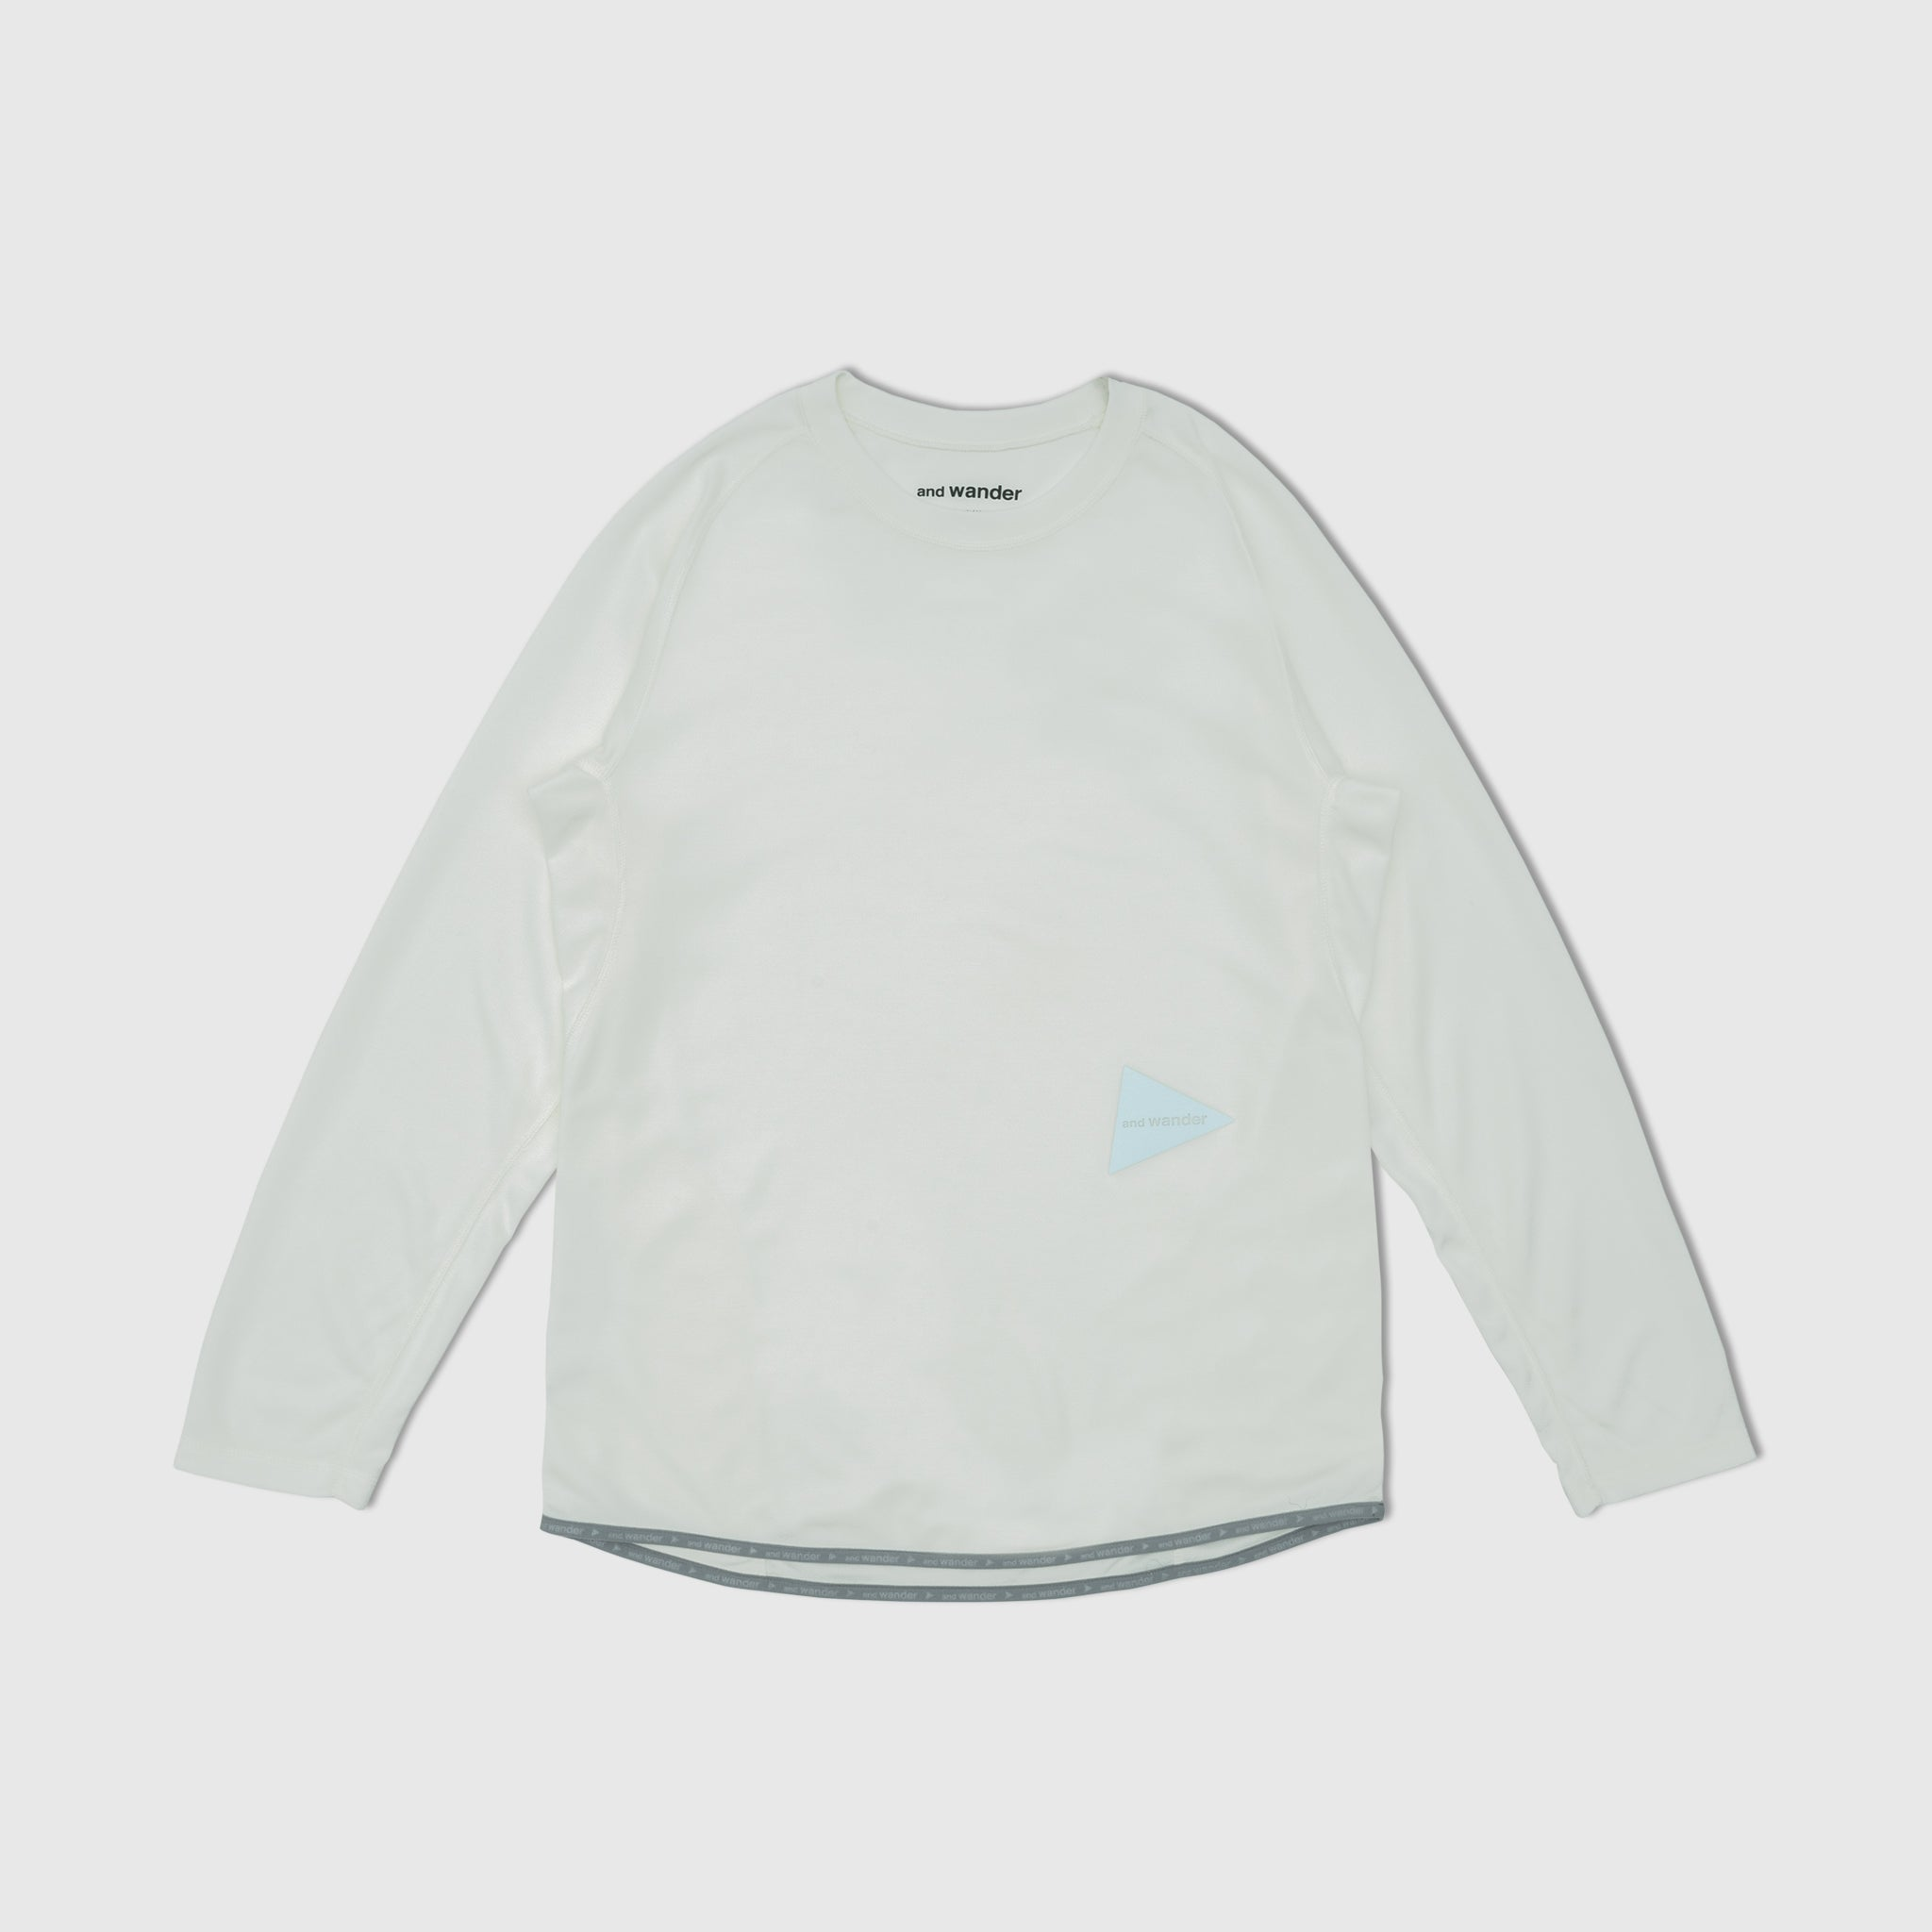 AND WANDER POWER DRY JERSEY RAGLAN L/S T-SHIRT